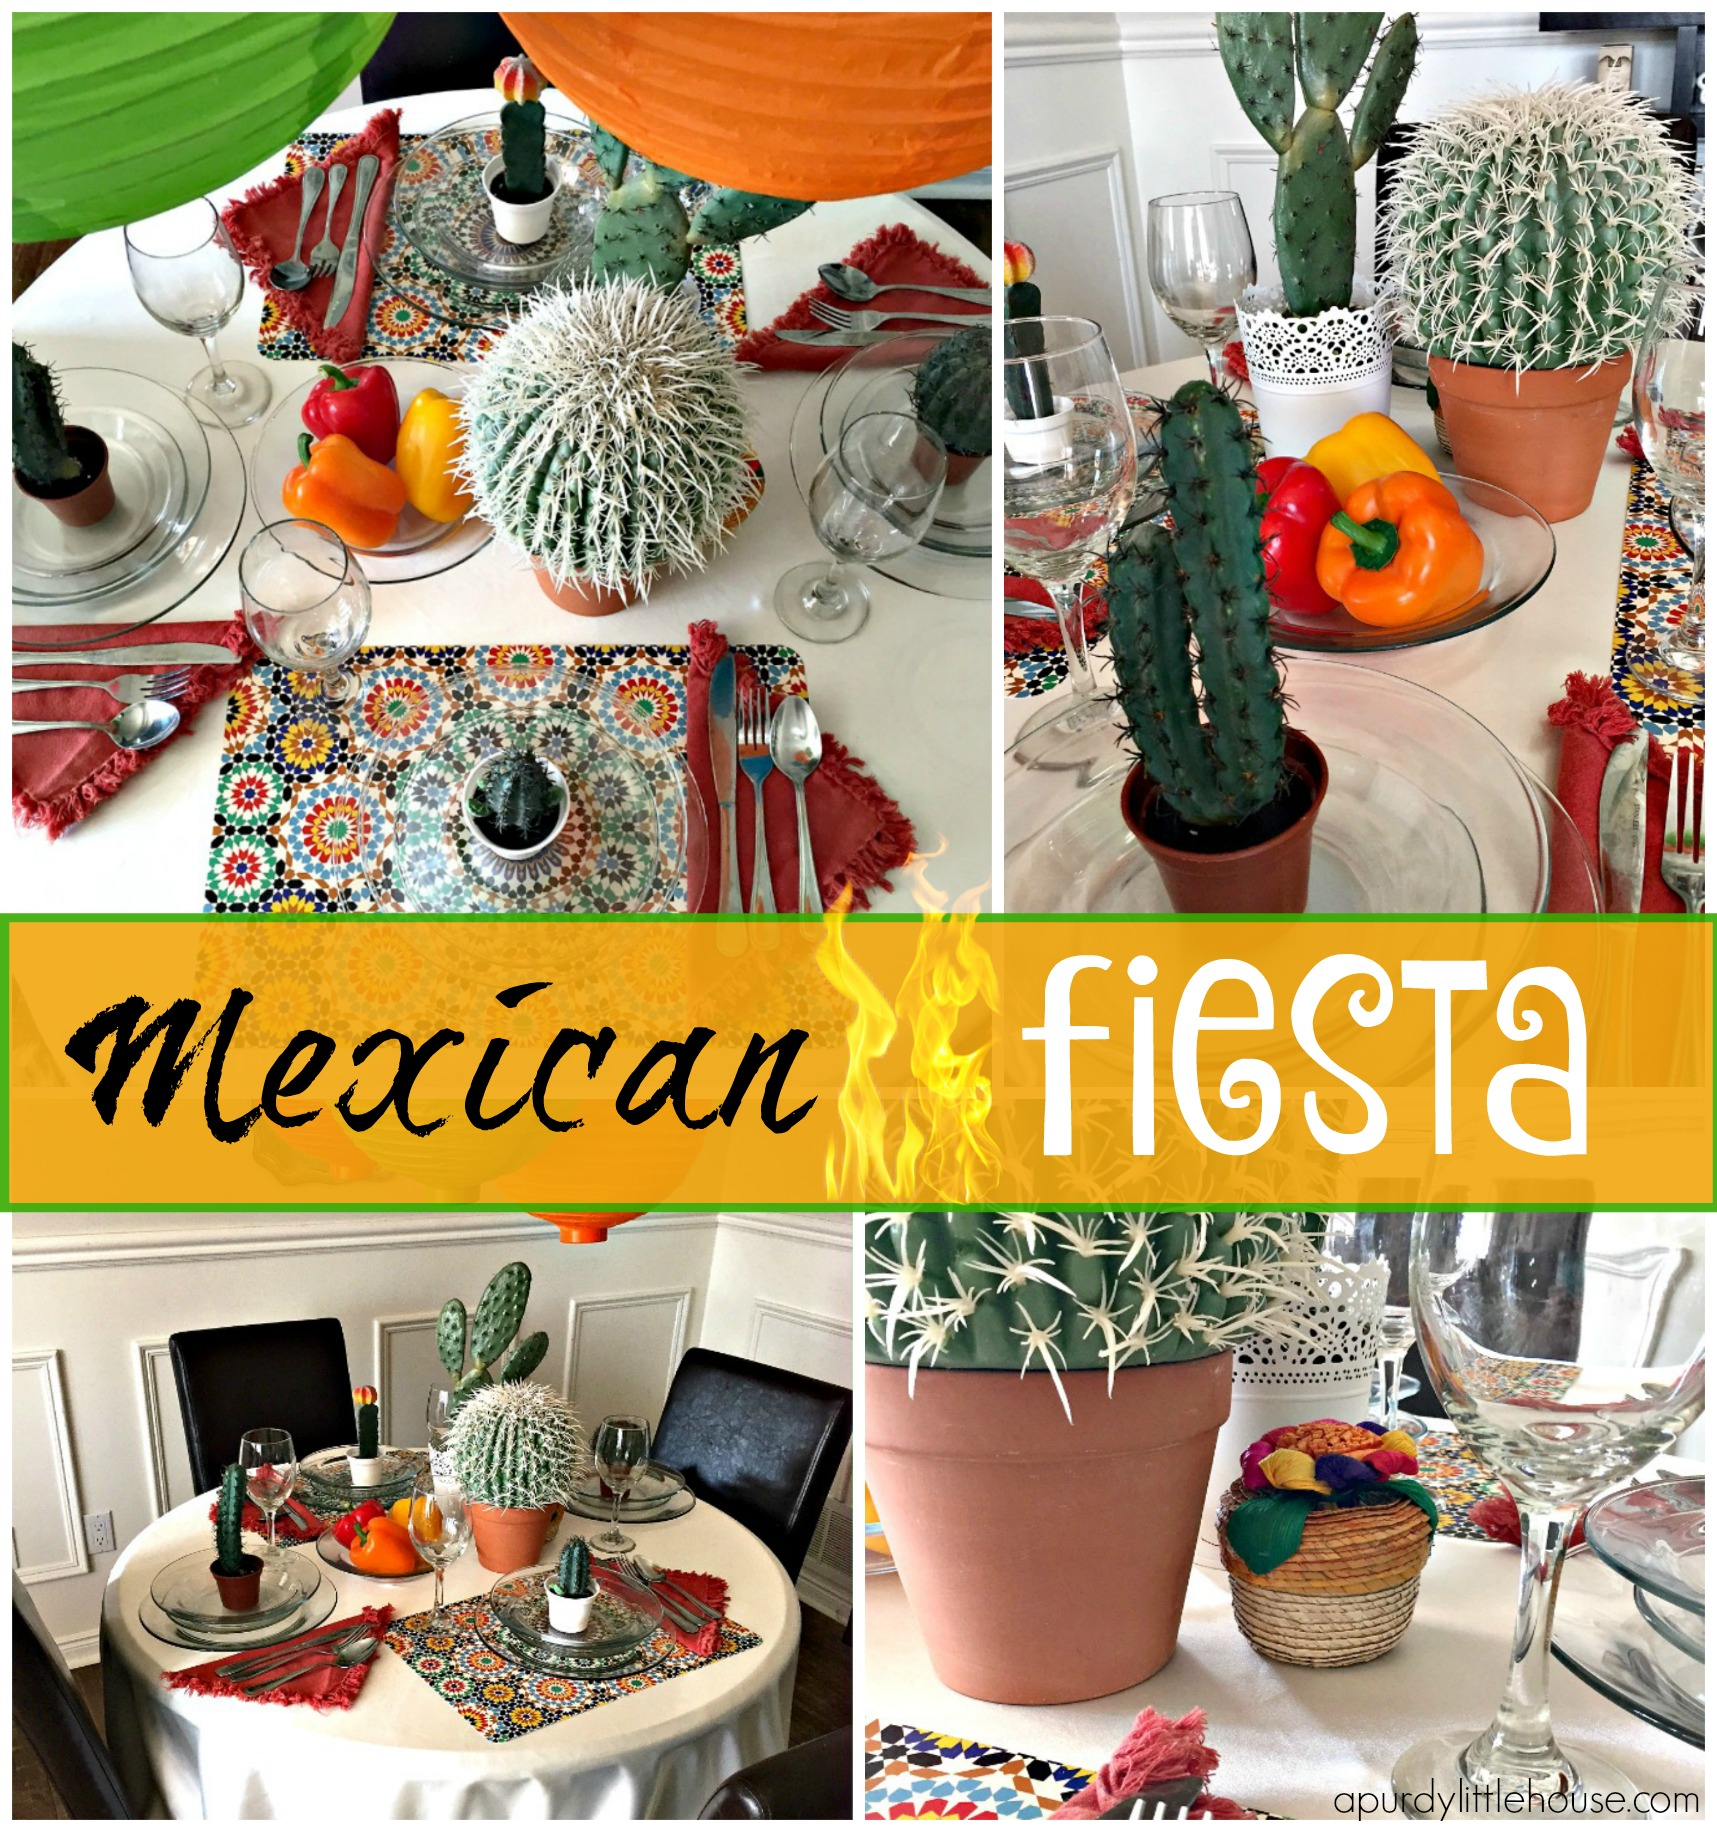 Dinner table with mexican food - Mexican Fiestatable Setting For A Mexican Themed Dinner Mexican Food Table Setting Apurdylittlehouse Com